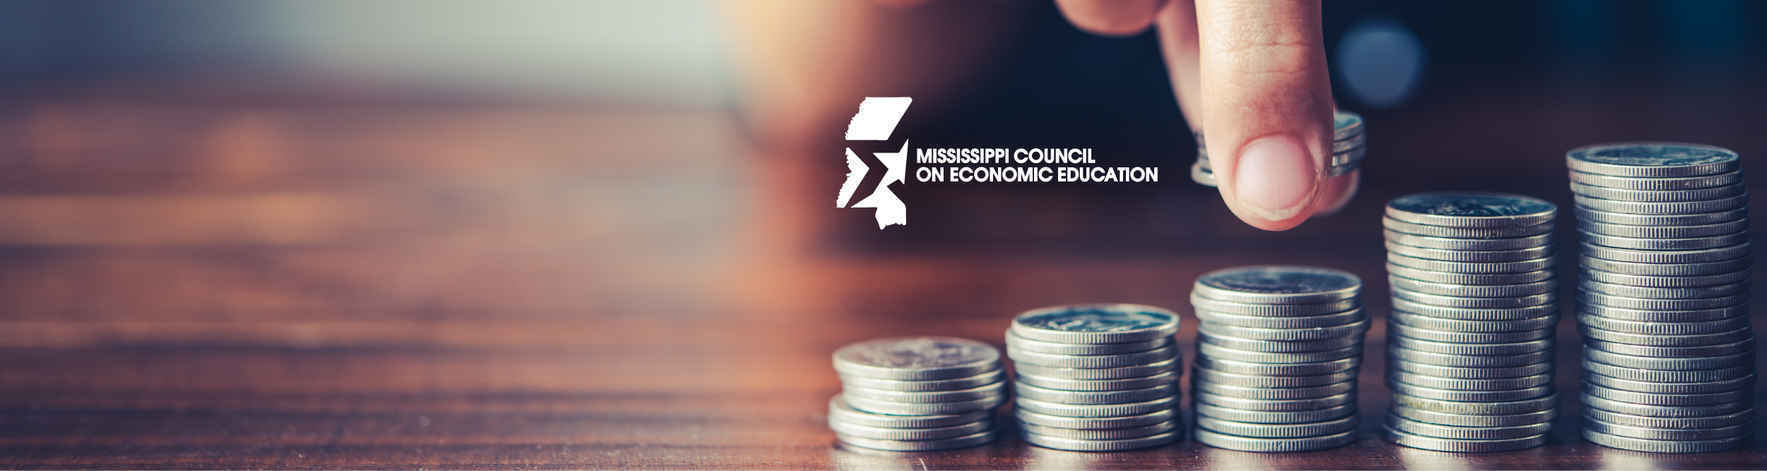 Donate to increase economic and financial literacy in Mississippi. image